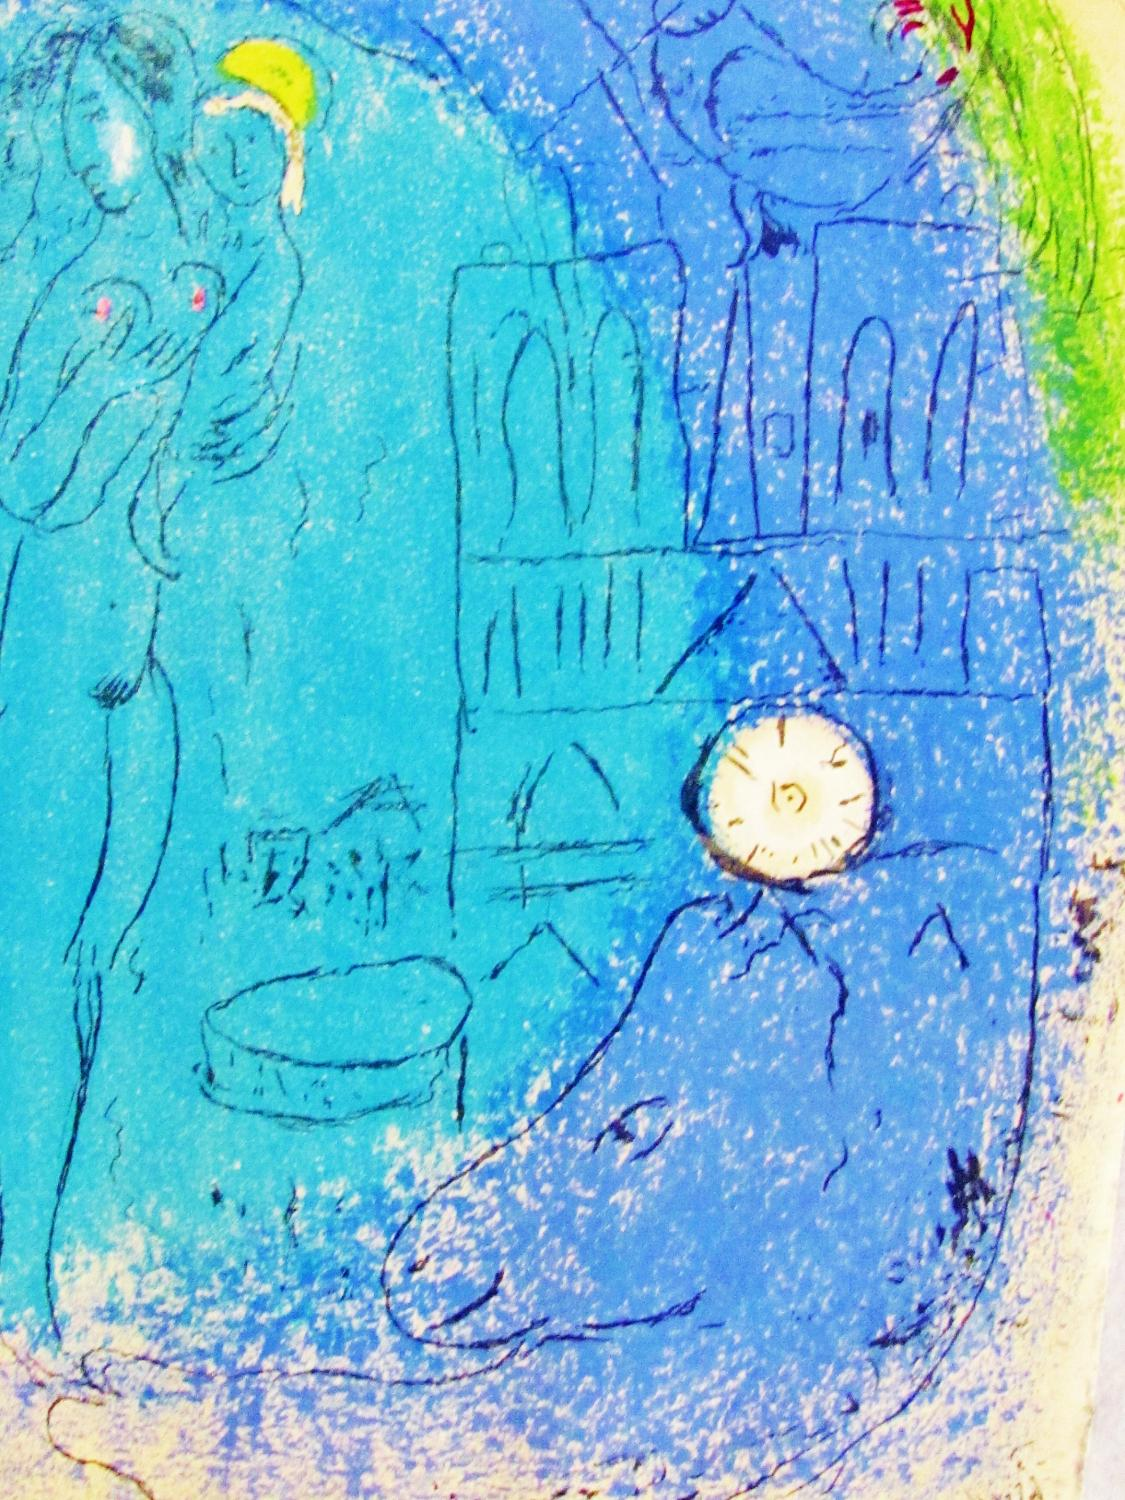 MOTHER_AND_CHILD_IN_FRONT_OF_NORTE_DAME__ORIGINAL_LITHOGRAPH_CHAGALL_Near_Fine